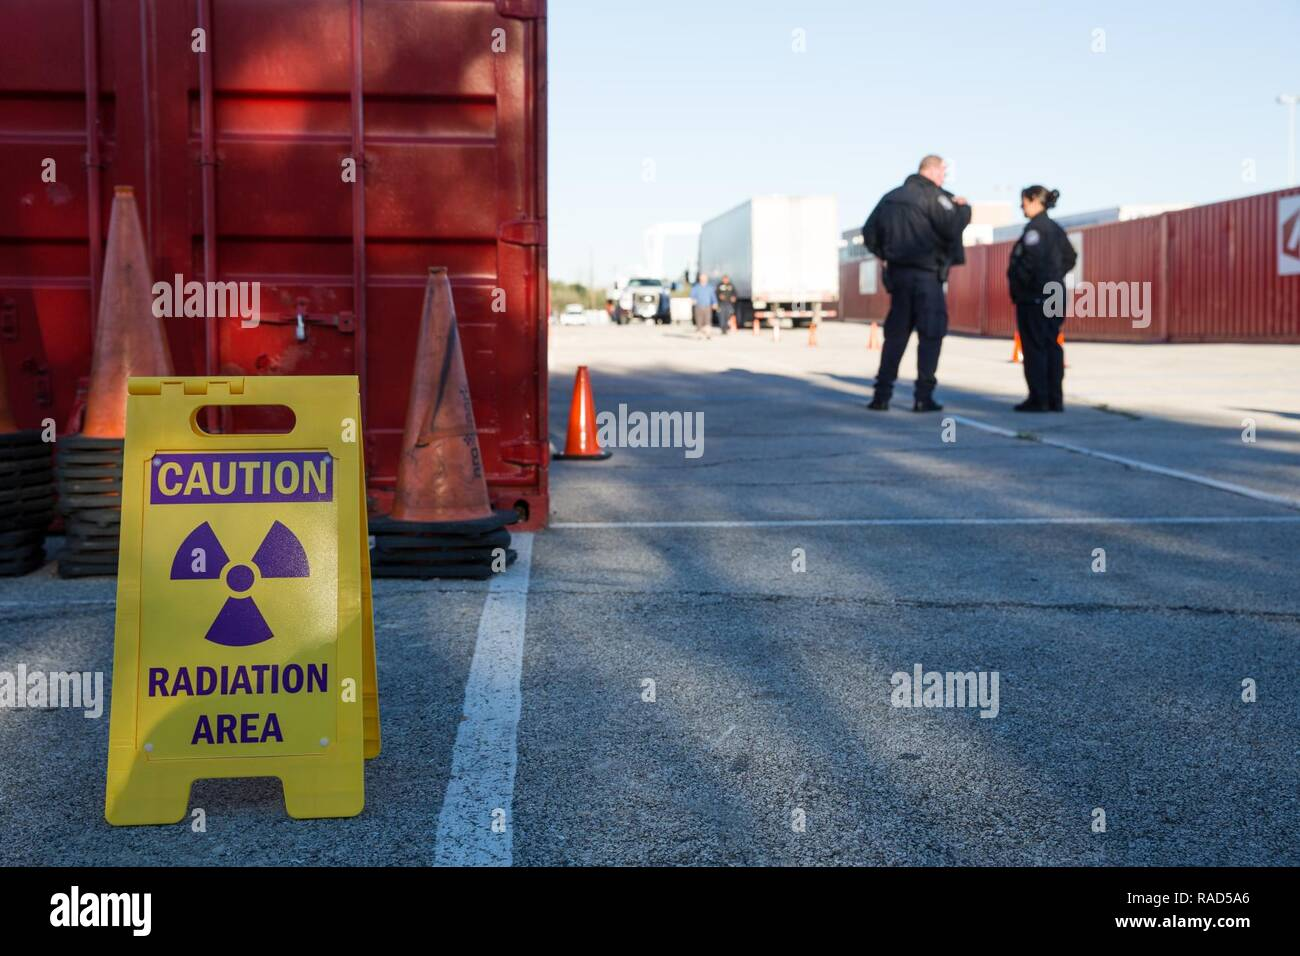 Officers with the U.S. Customs and Border Protection Office of Field Operations conduct inspections of commercial trucks and concession vehicles as they arrive at NRG Stadium in preparation for Super Bowl 51 in Houston, Texas, Jan. 30, 2017. Vehicles are scanned by x-ray prior to entry into the main stadium facilities. U.S. Customs and Border Protection - Stock Image